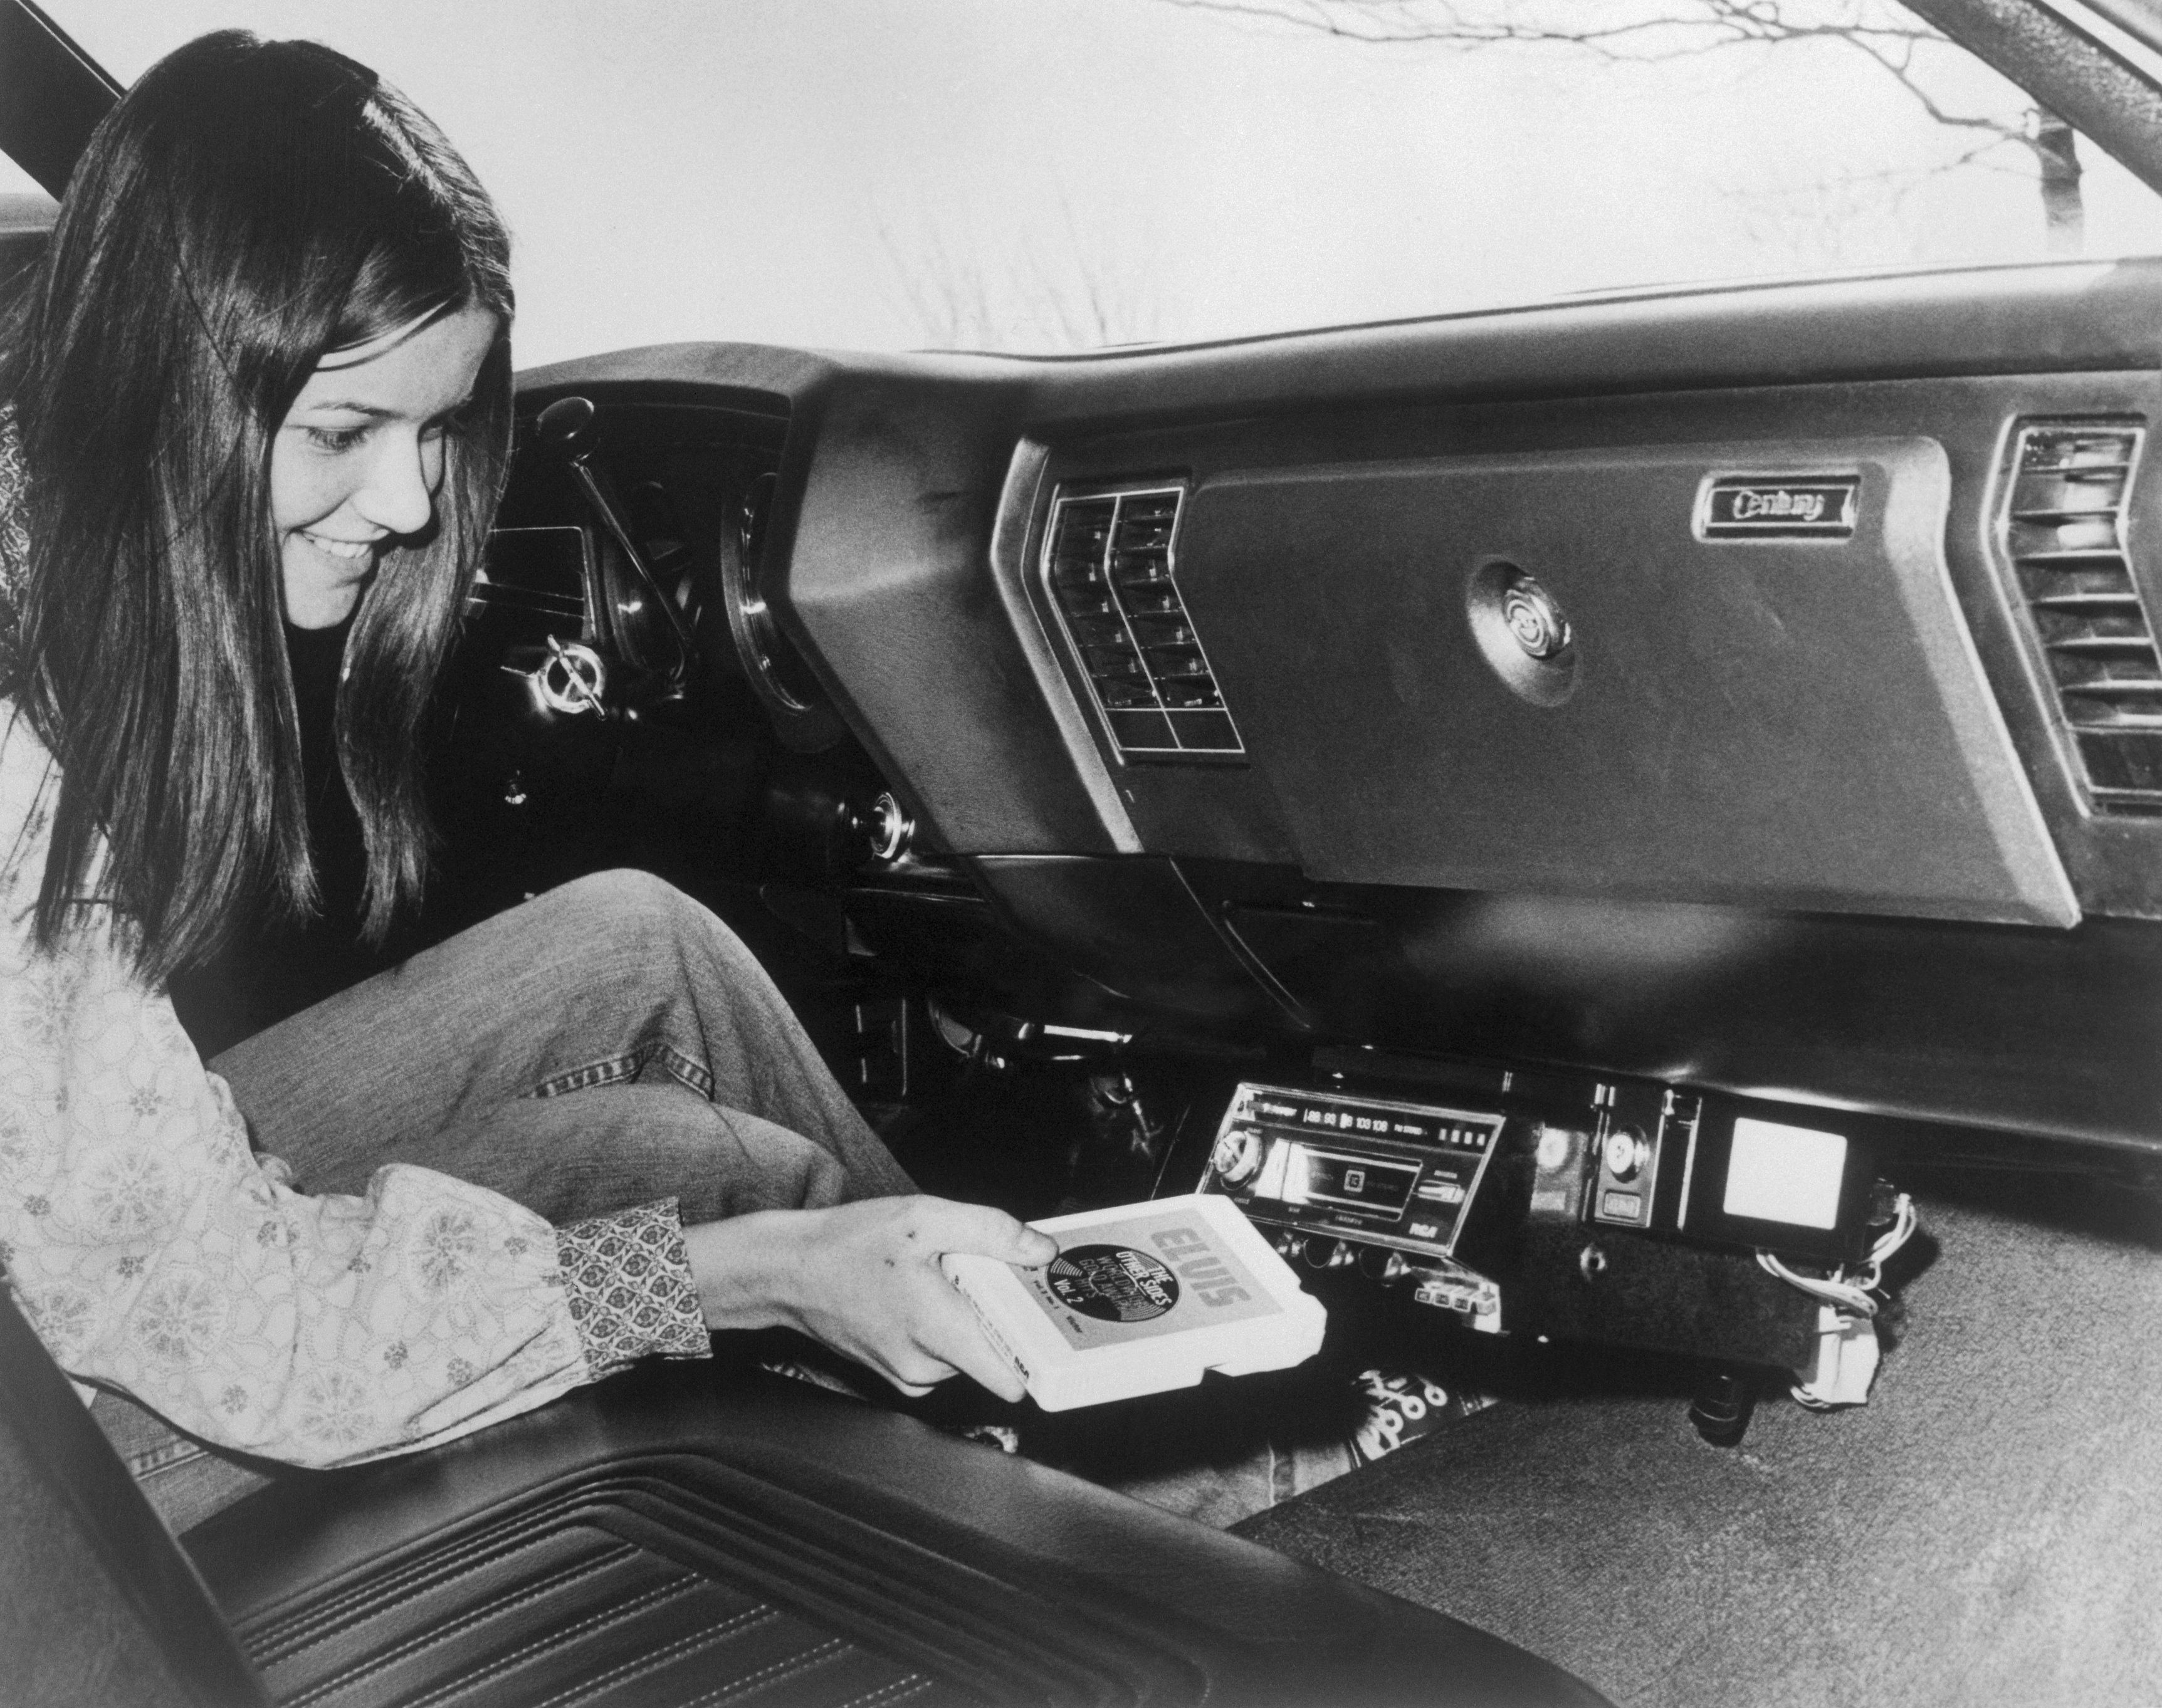 Woman Inserting Eight-Track Tape in Car Stereo